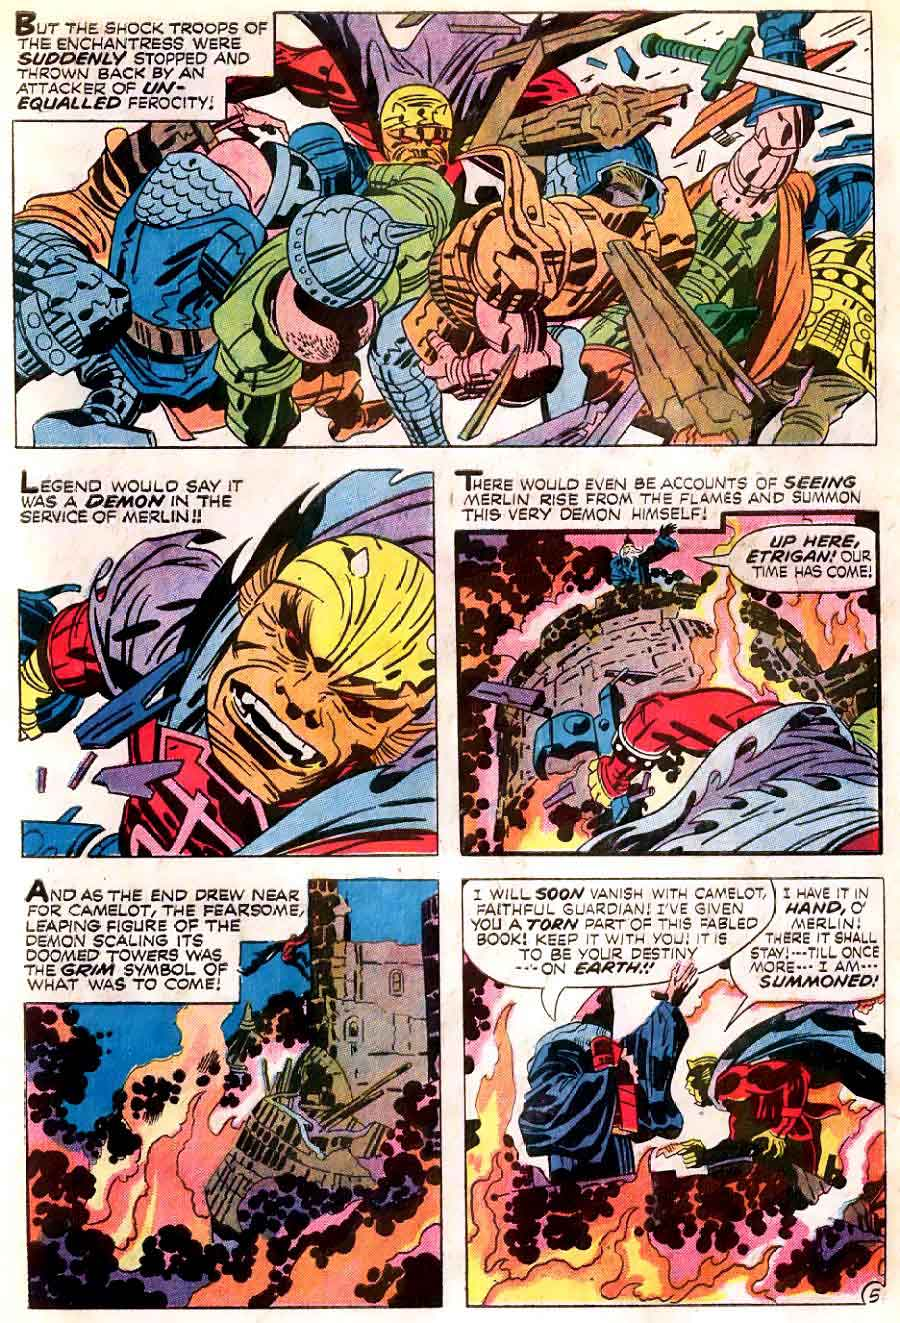 Demon v1 #1 dc bronze age comic book page art by Jack Kirby